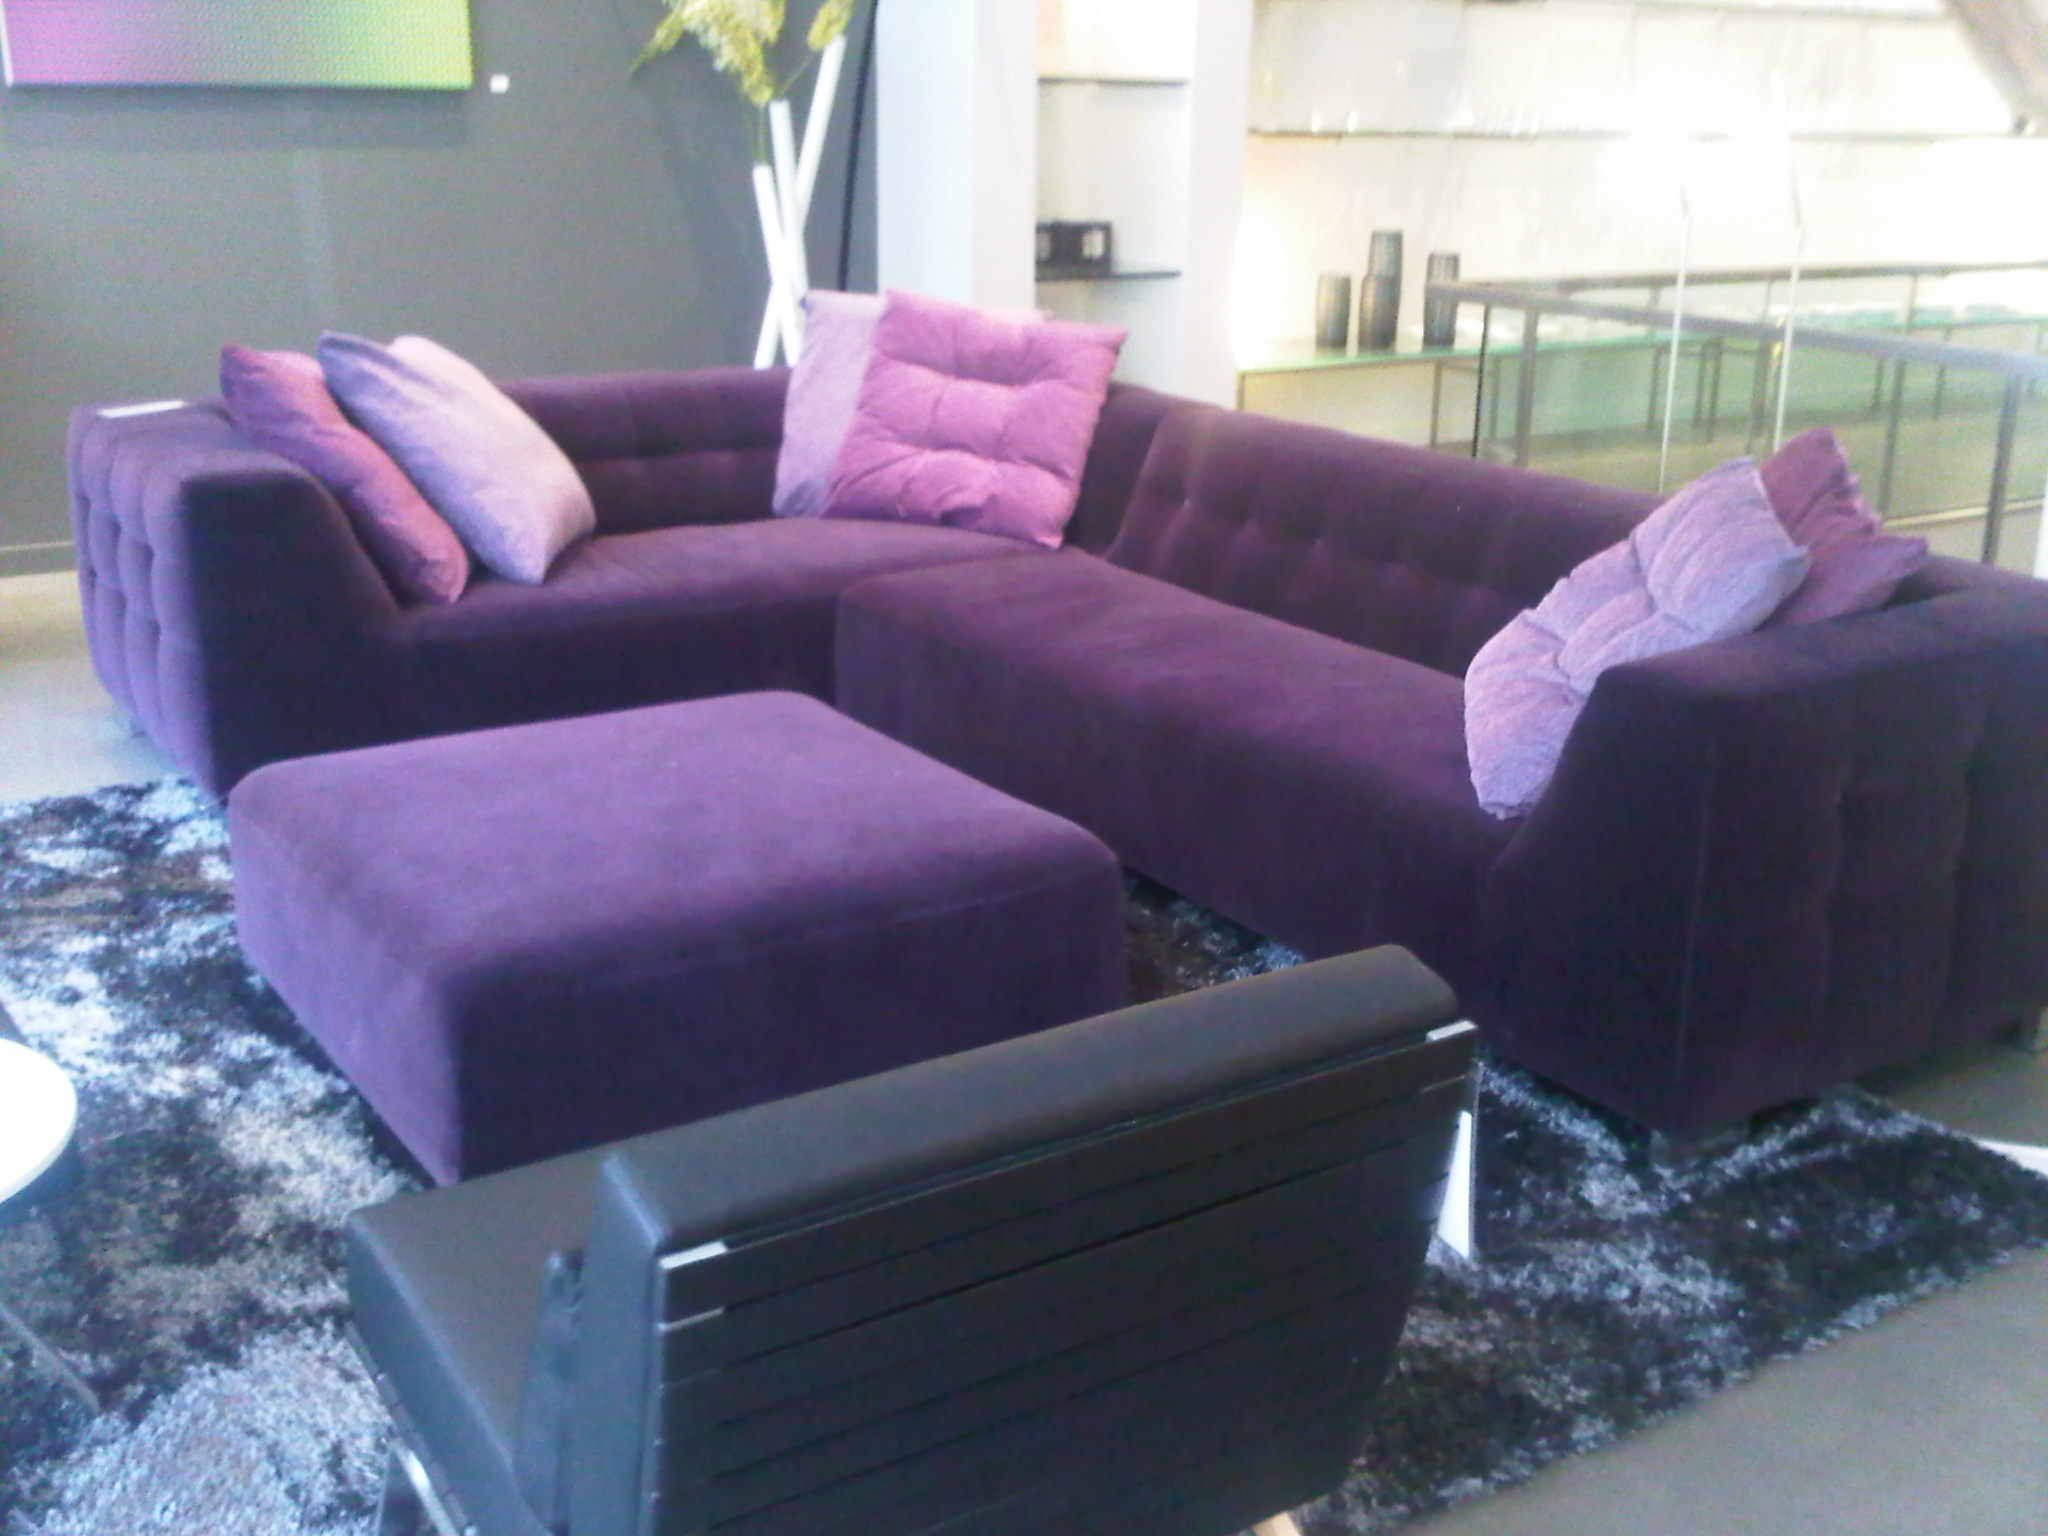 Astounding Purple Sectional Sofa Ligne Roset In 2019 Purple Sofa Ibusinesslaw Wood Chair Design Ideas Ibusinesslaworg